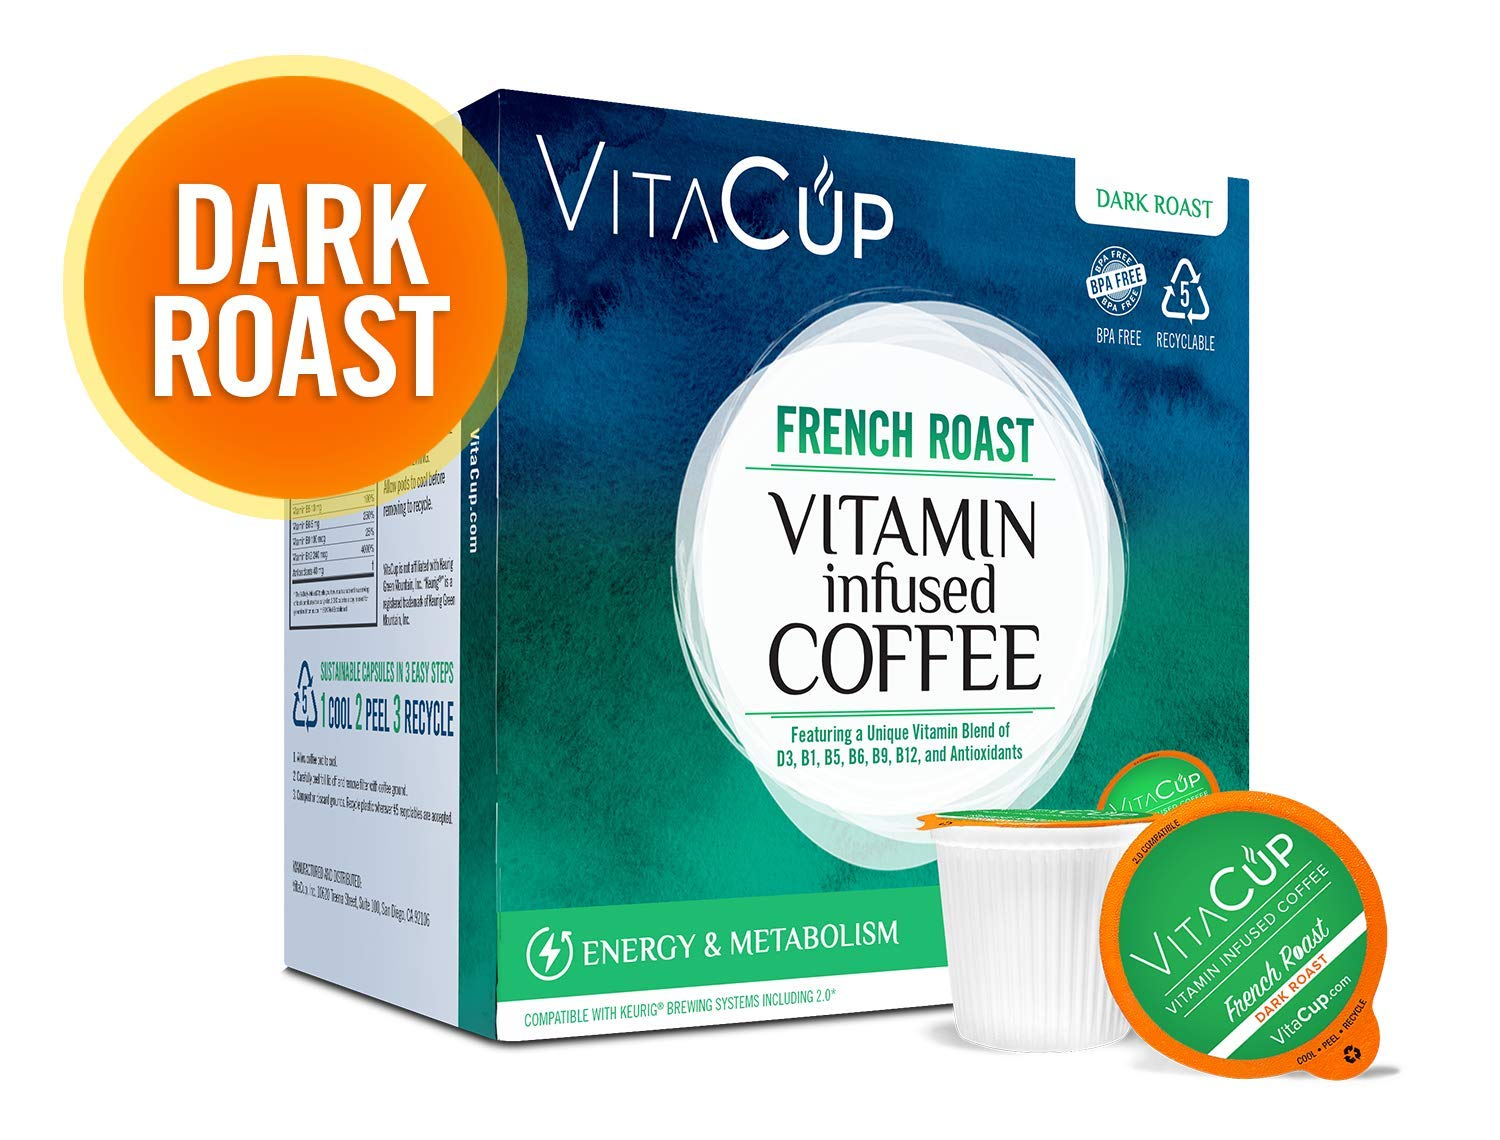 VitaCup Top Rated Coffee Cups Infused With Essential Vitamins B12, B9, B6, B5, B1, D3 in Single Serve Keurig Compatible K Pods, Best Selling French Roast 16 ct.